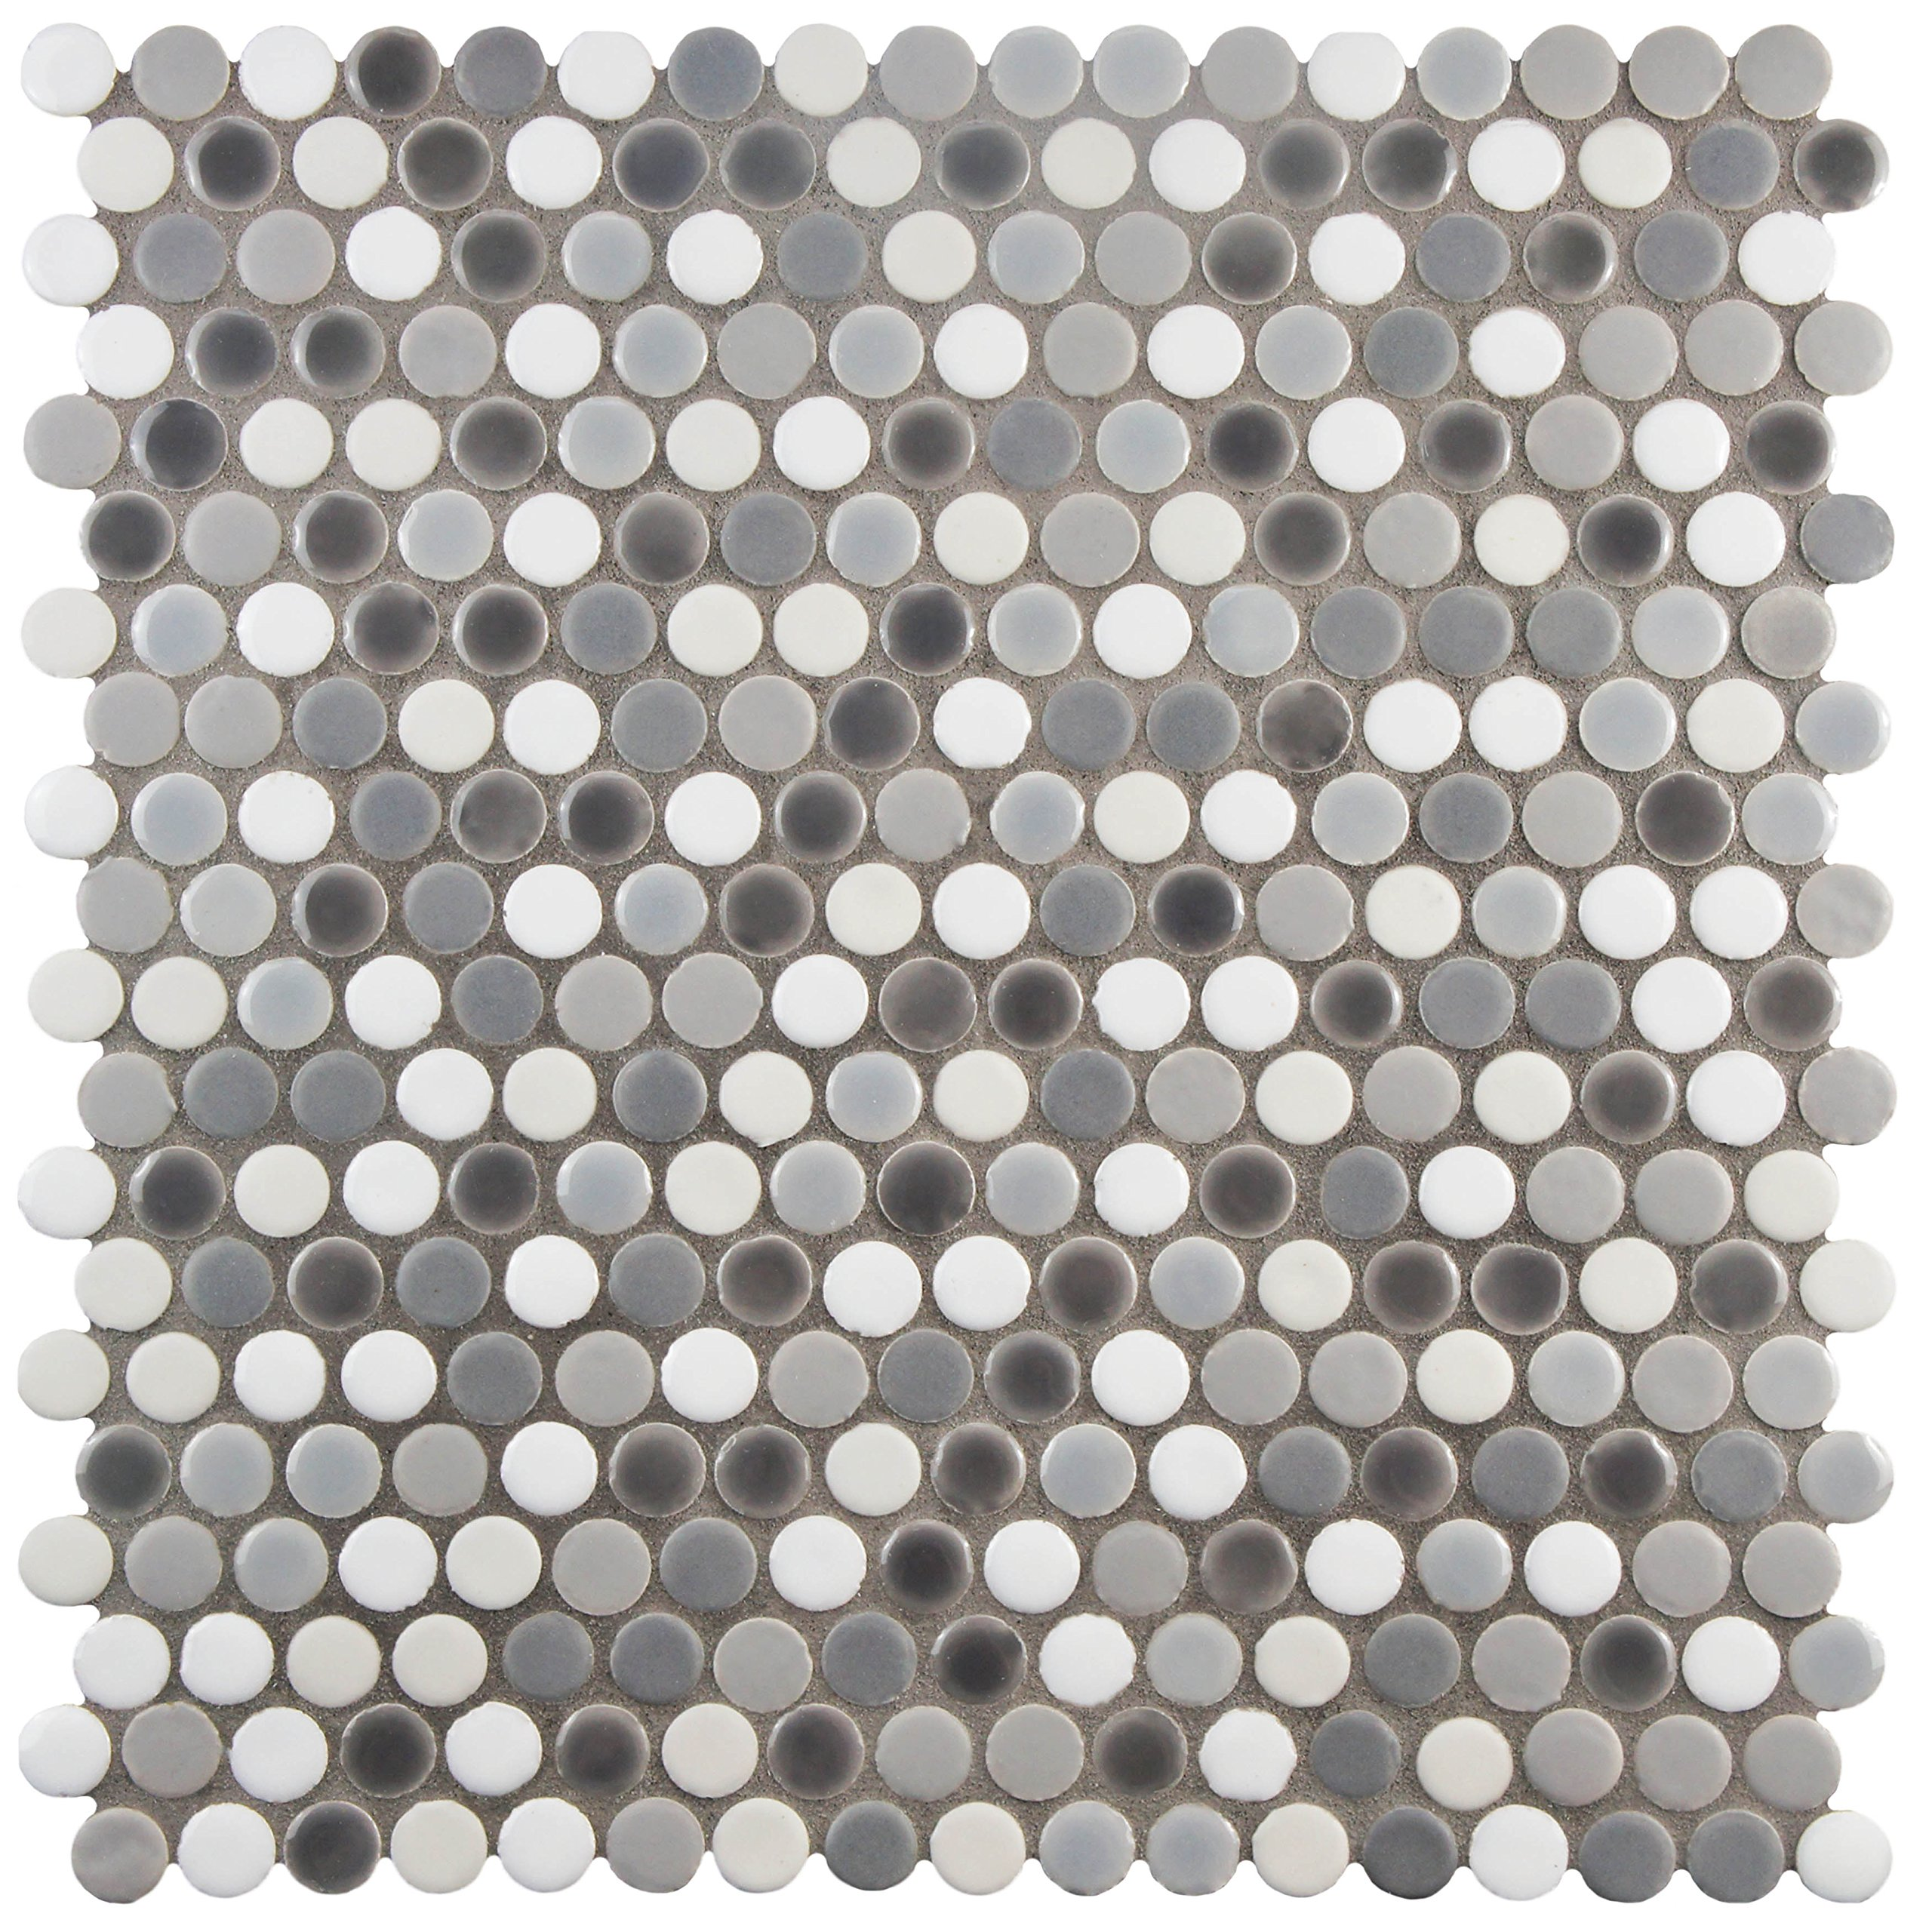 SomerTile FSHCOMLU Juno Penny Round Luna Porcelain Floor and Wall Tile, 11.25'' x 11.75'', Grey/White by SOMERTILE